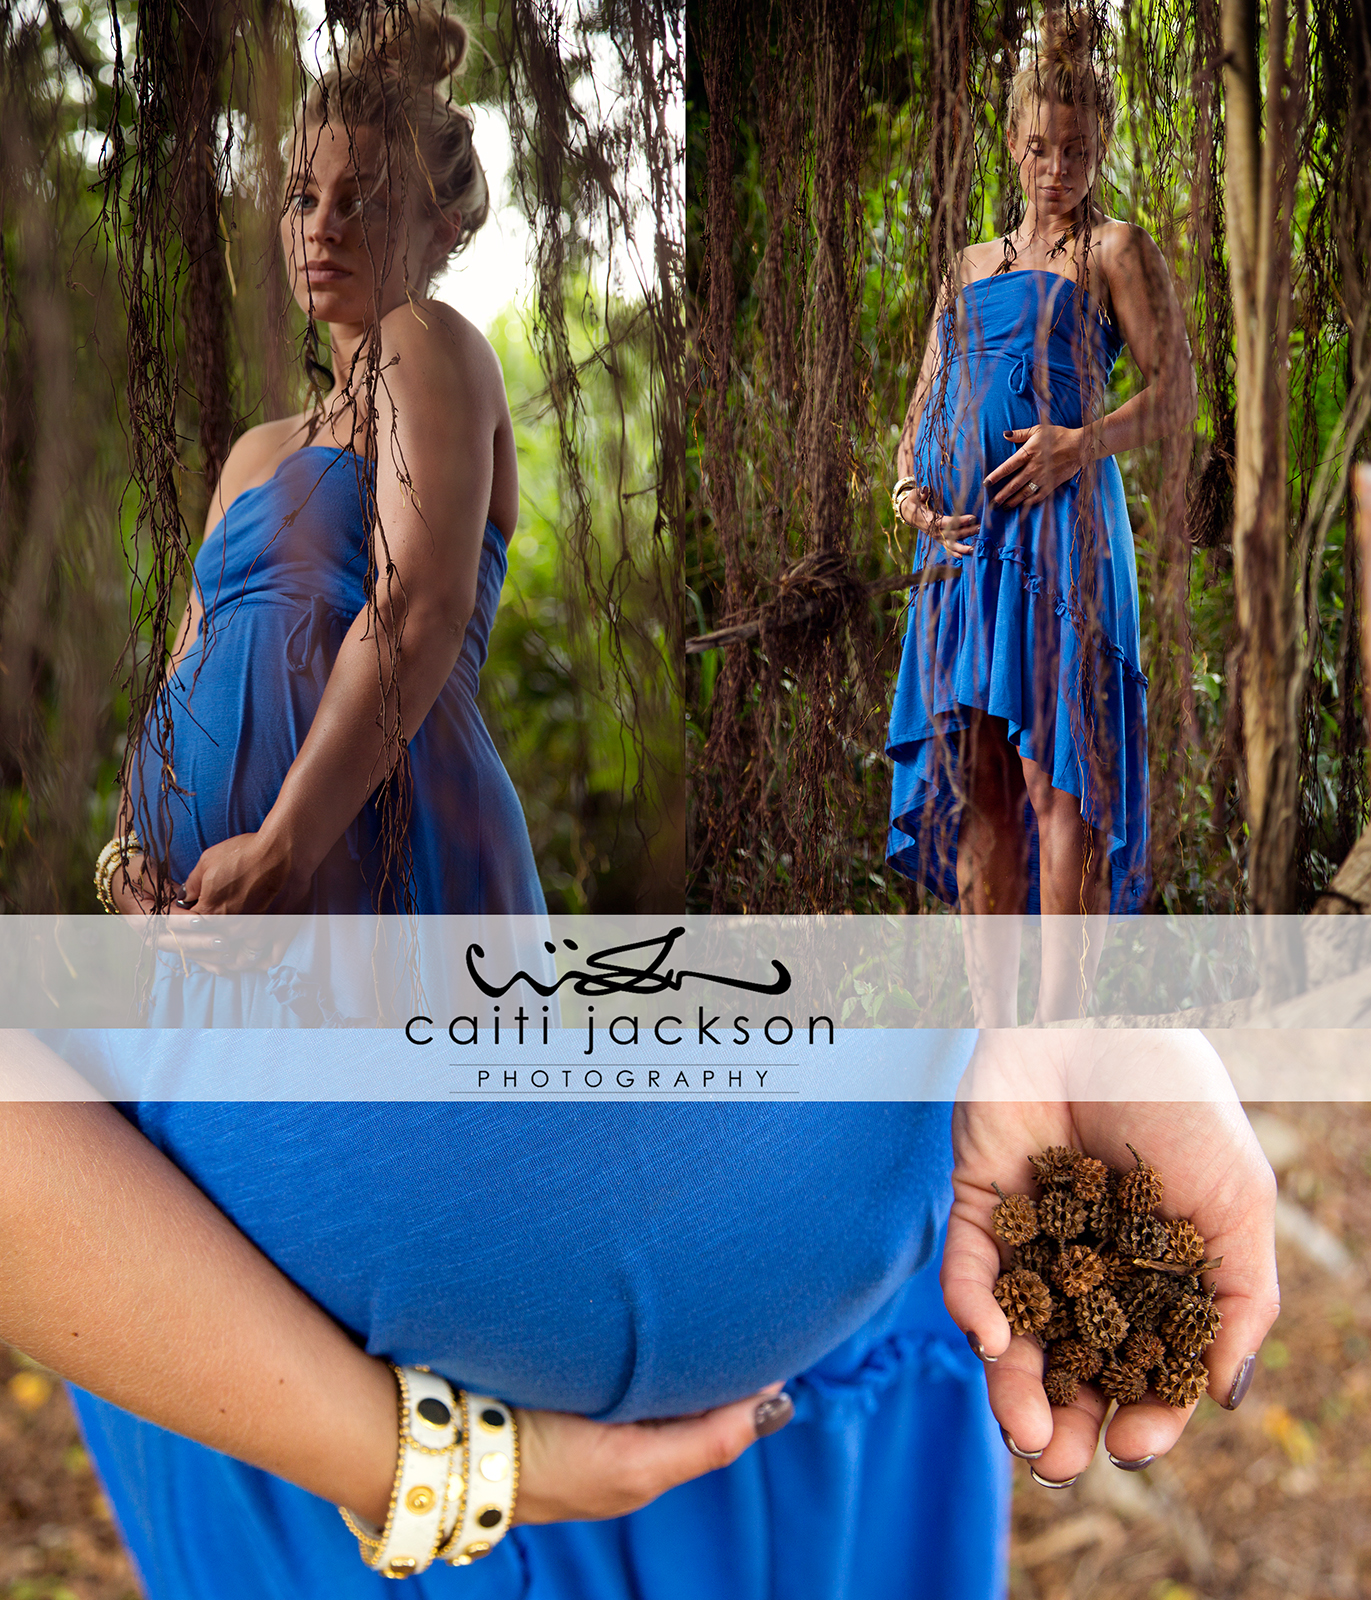 Hawaiian maternity session, Oahu maternity photography, Caiti Jackson Photography, Caiti Jackson, Maternity Photography